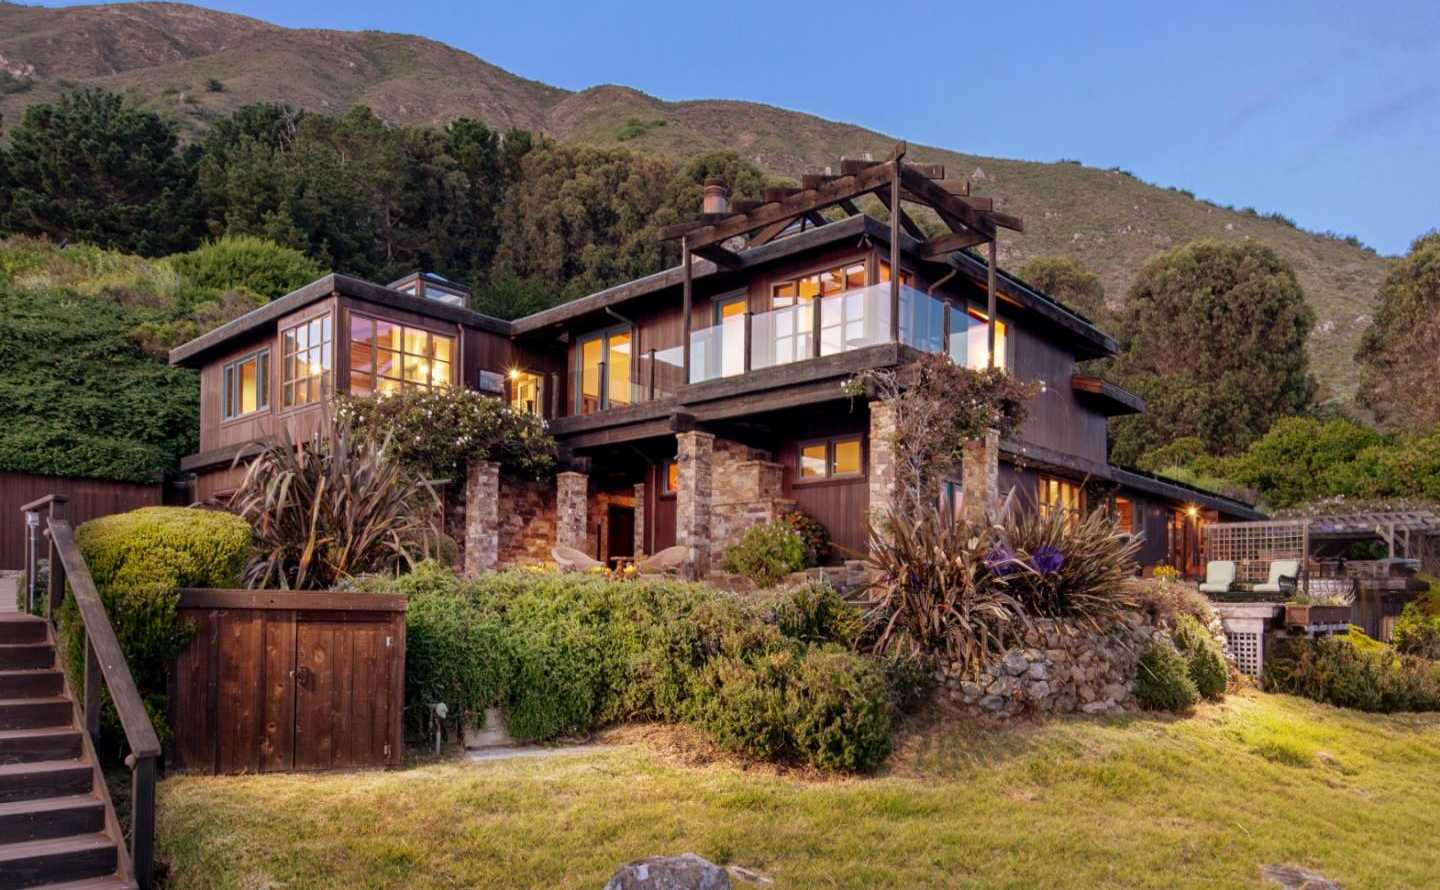 $4,550,000 - 5Br/3Ba -  for Sale in Big Sur